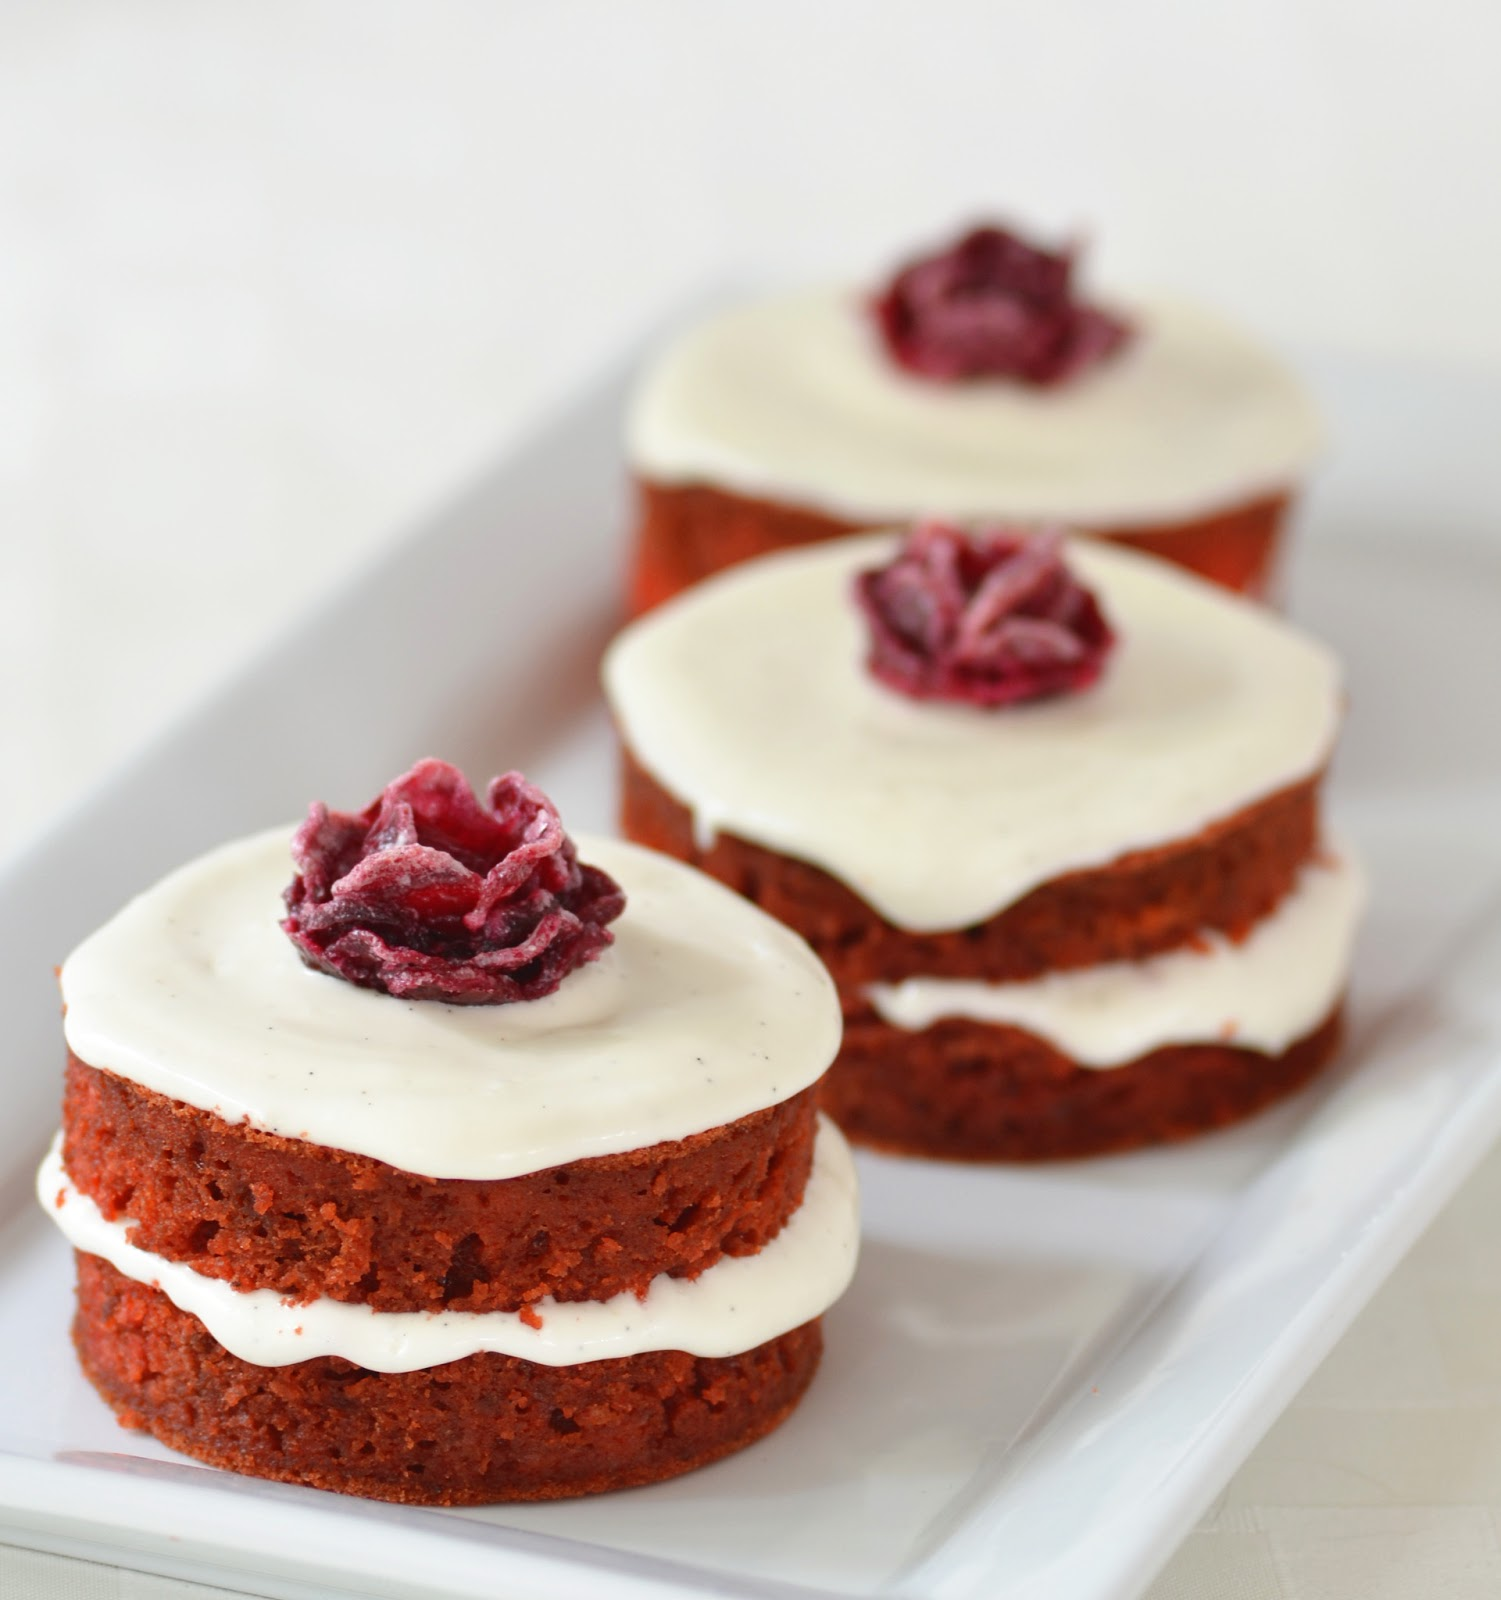 Mini Cake Recipes With Pictures : beet-mini-cakes-1.JPG 751x800 pixels Miniature Cakes ...